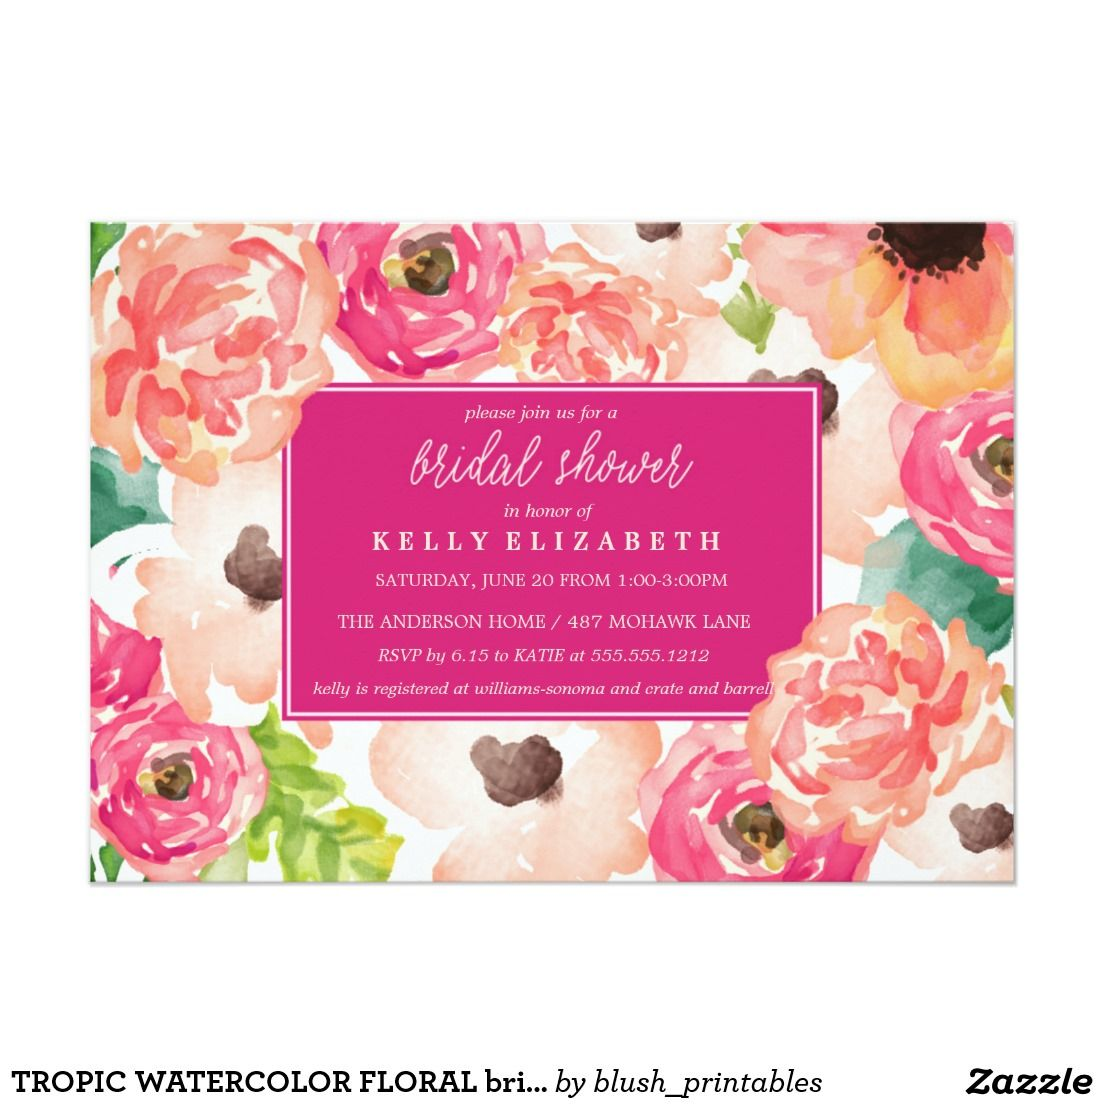 Tropic Watercolor Floral Bridal Shower Invitation Shower